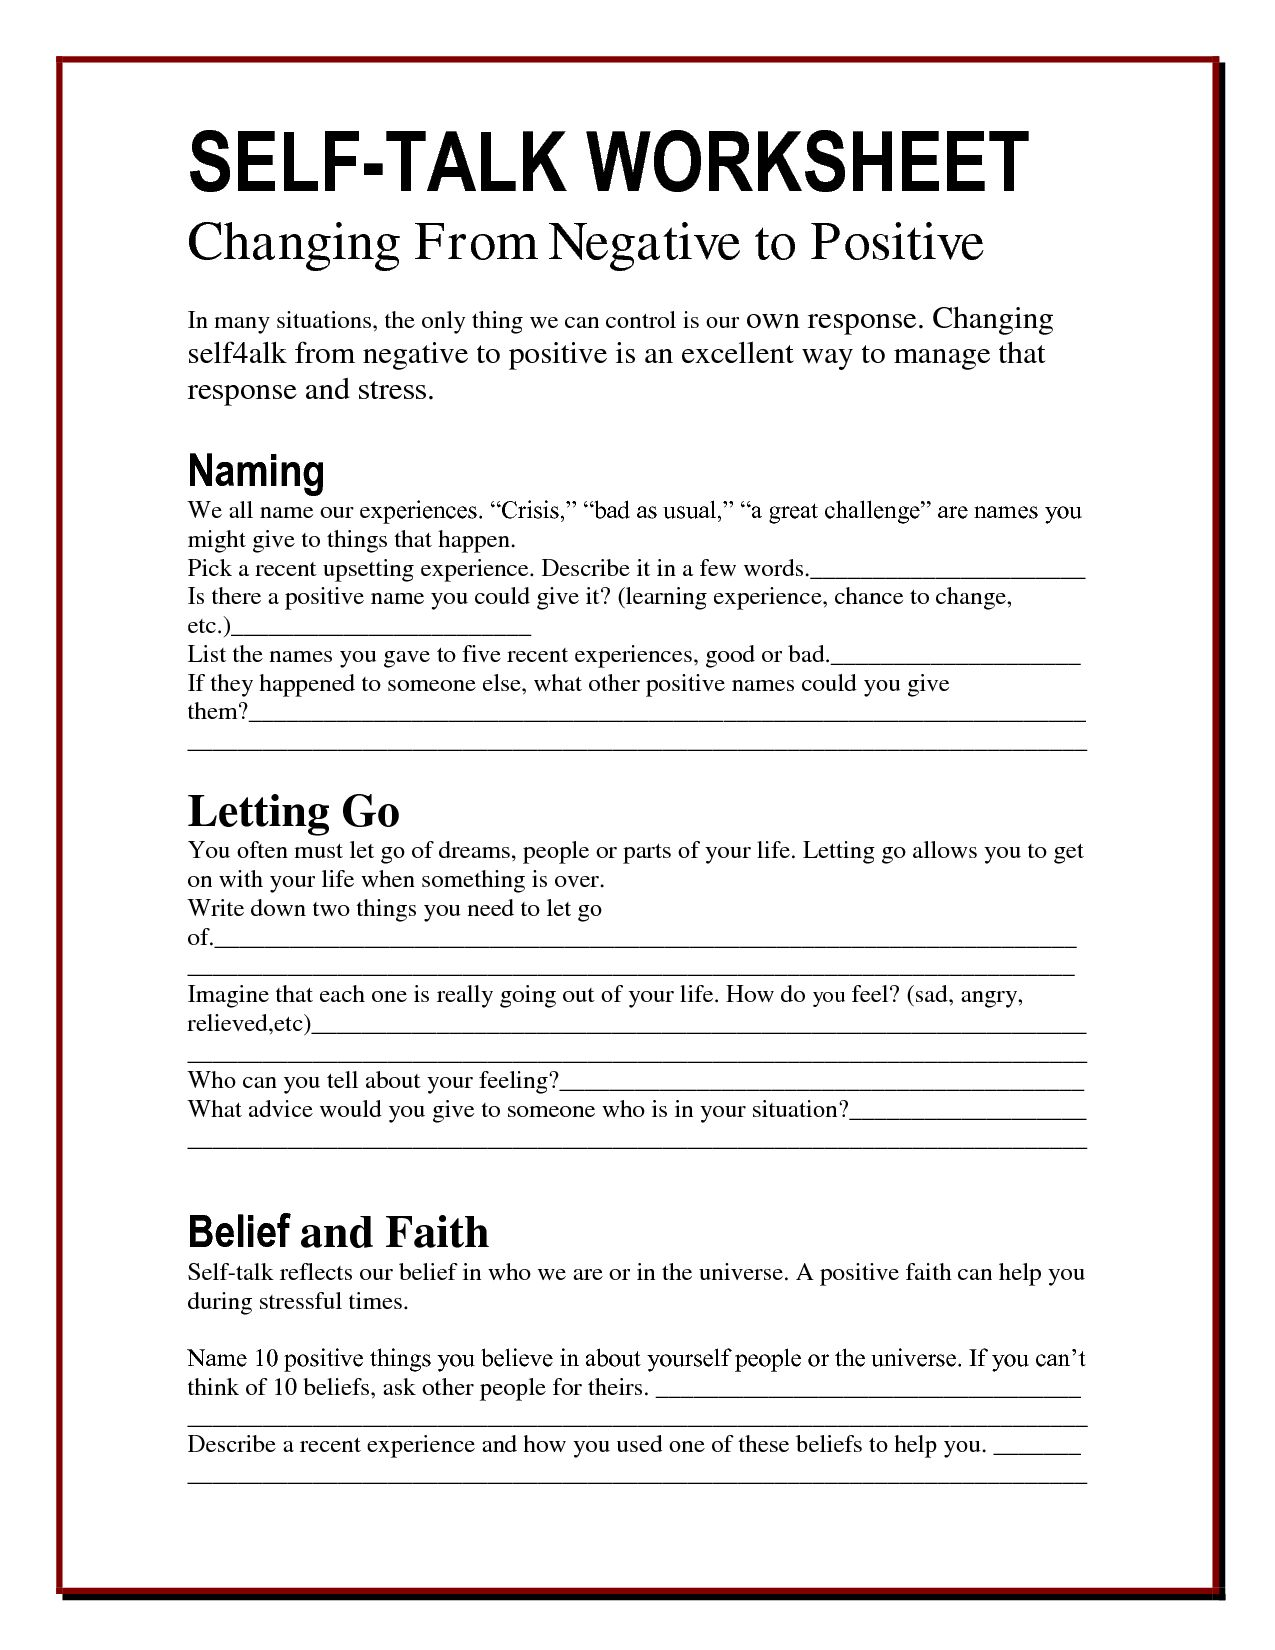 Worksheets Anger Management Therapy Worksheets pin by brenda johnson on therapy activities pinterest self talk worksheets changing negatives to positives